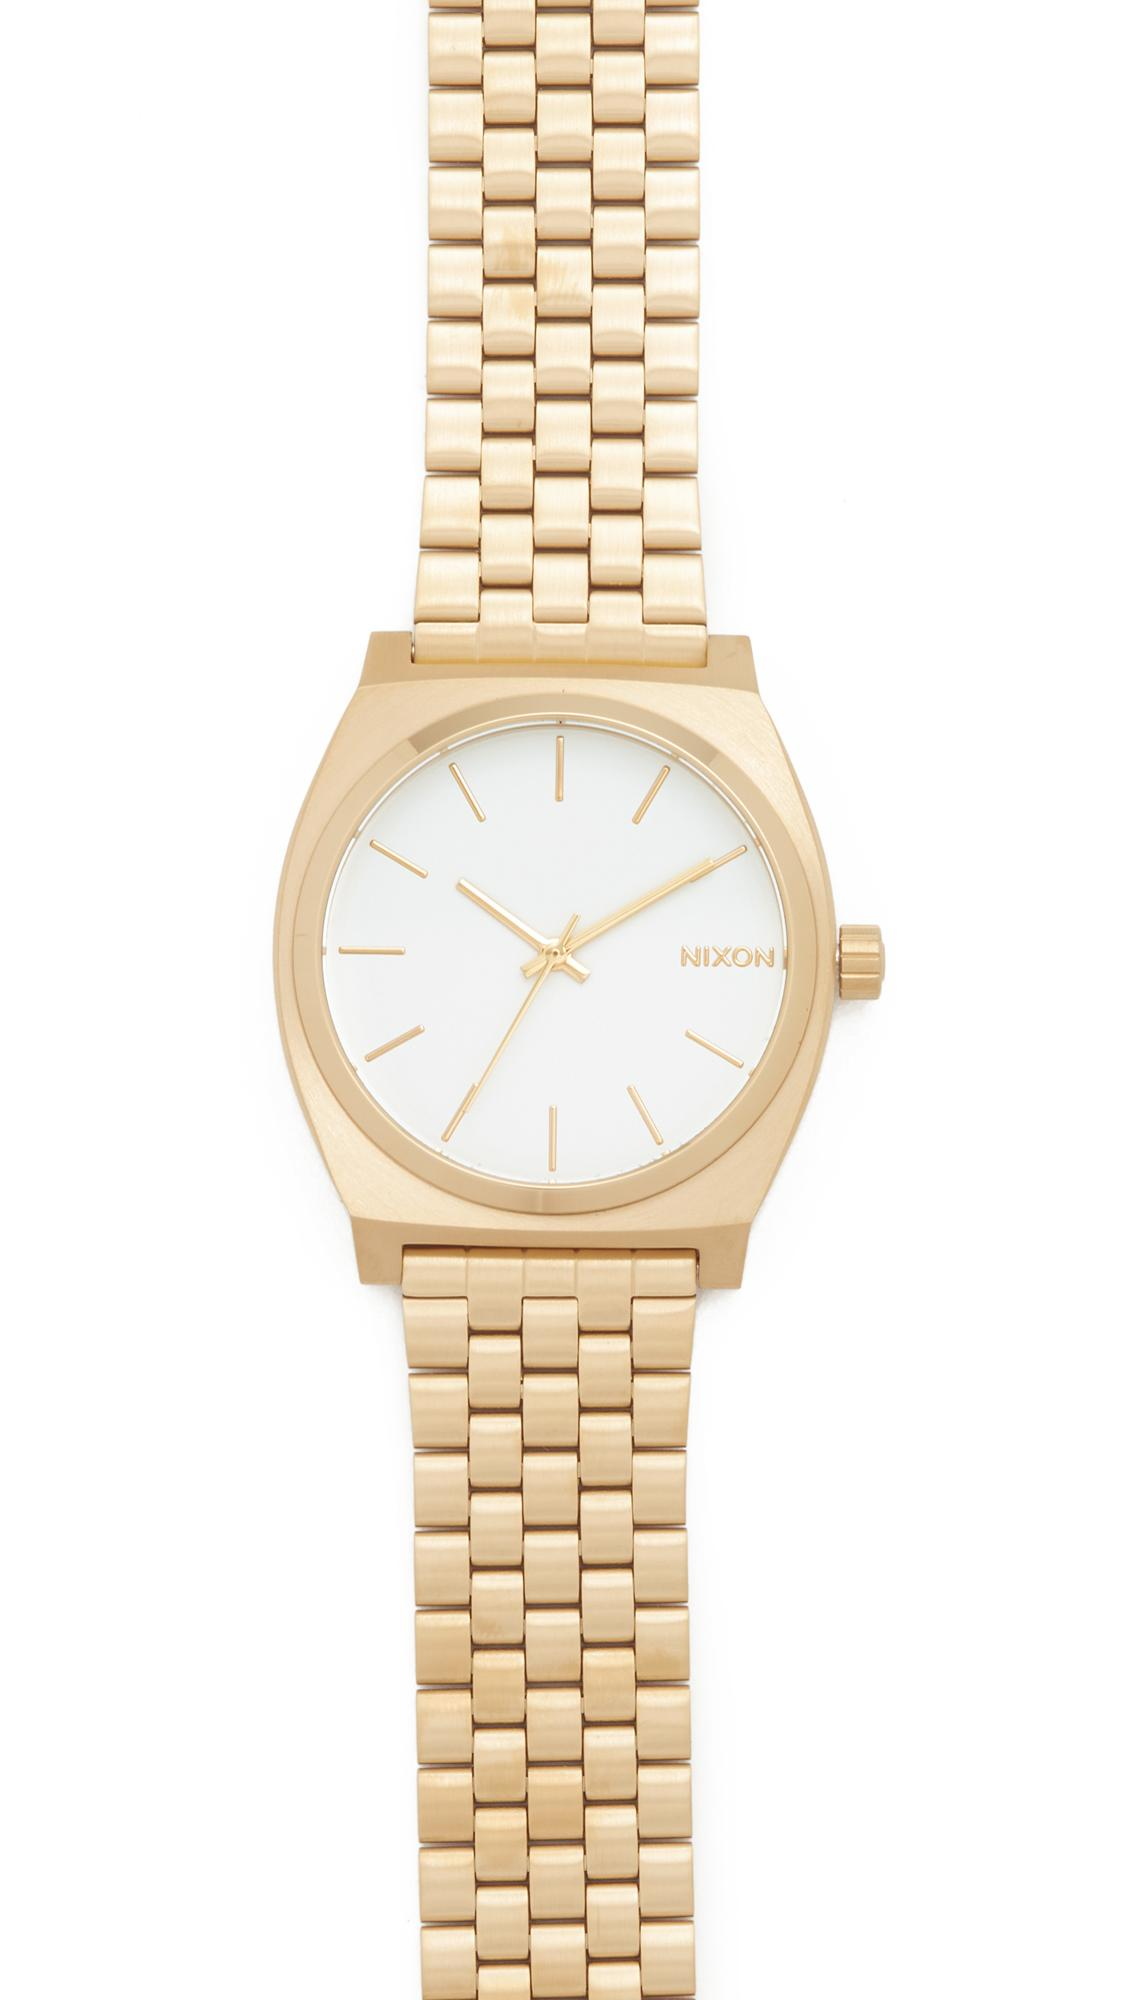 Nixon Time Teller Watch In Gold/white